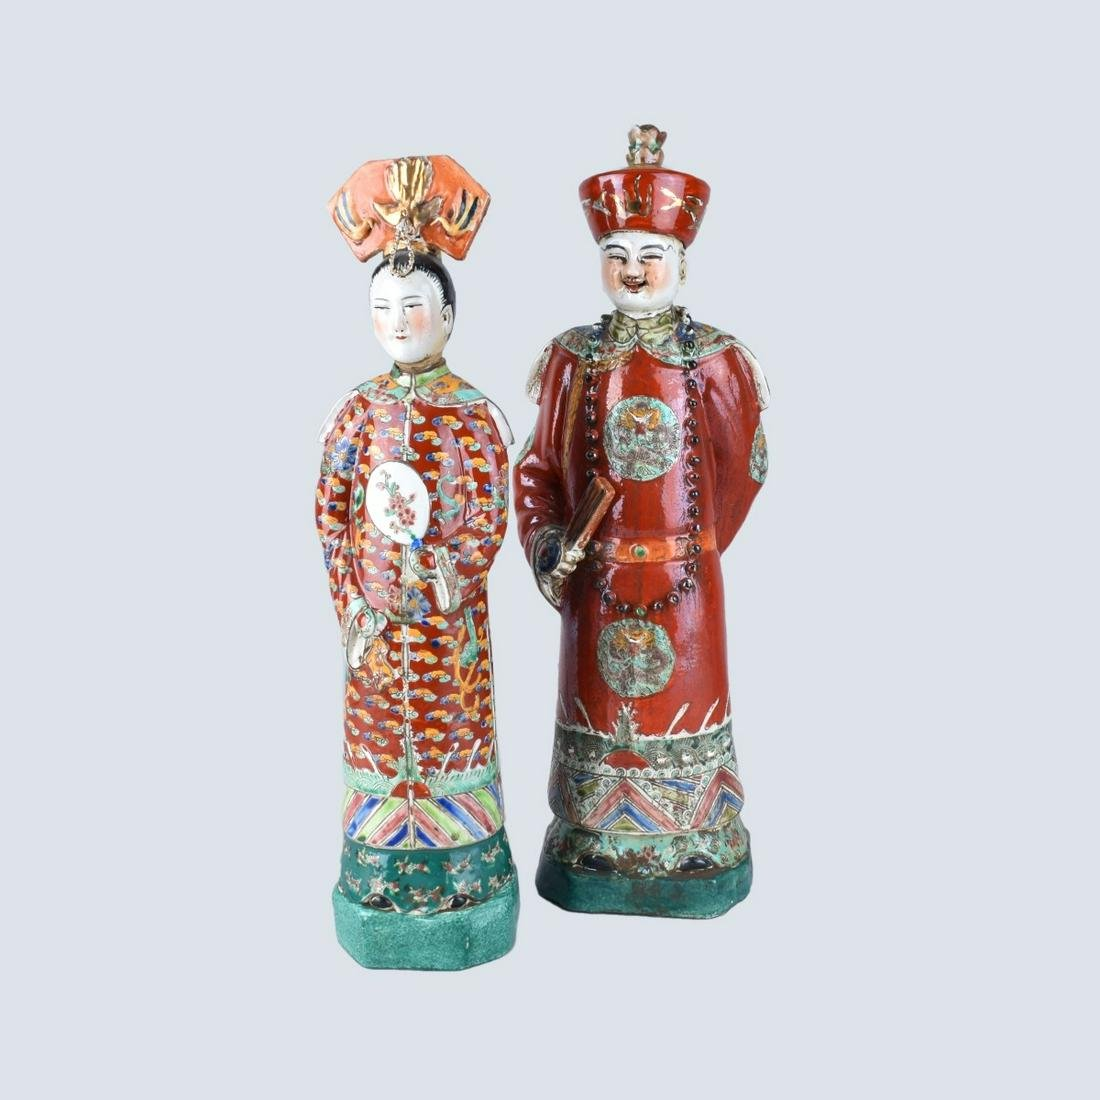 Two Chinese Export Figurines